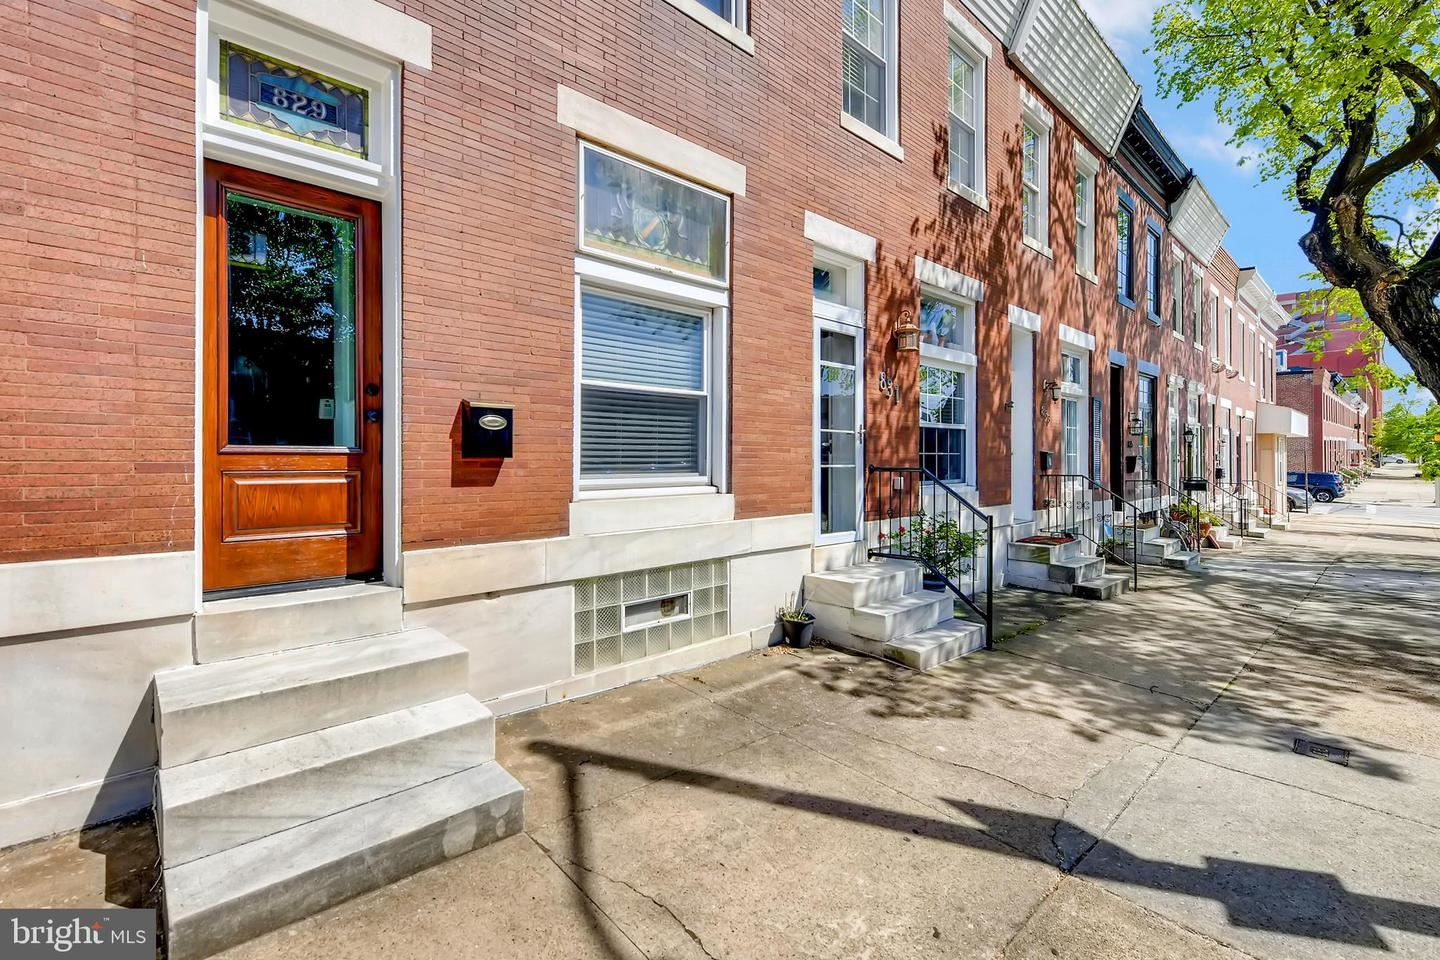 829 S CONKLING ST, Baltimore, MD 21224 - MLS#: MDBA546696